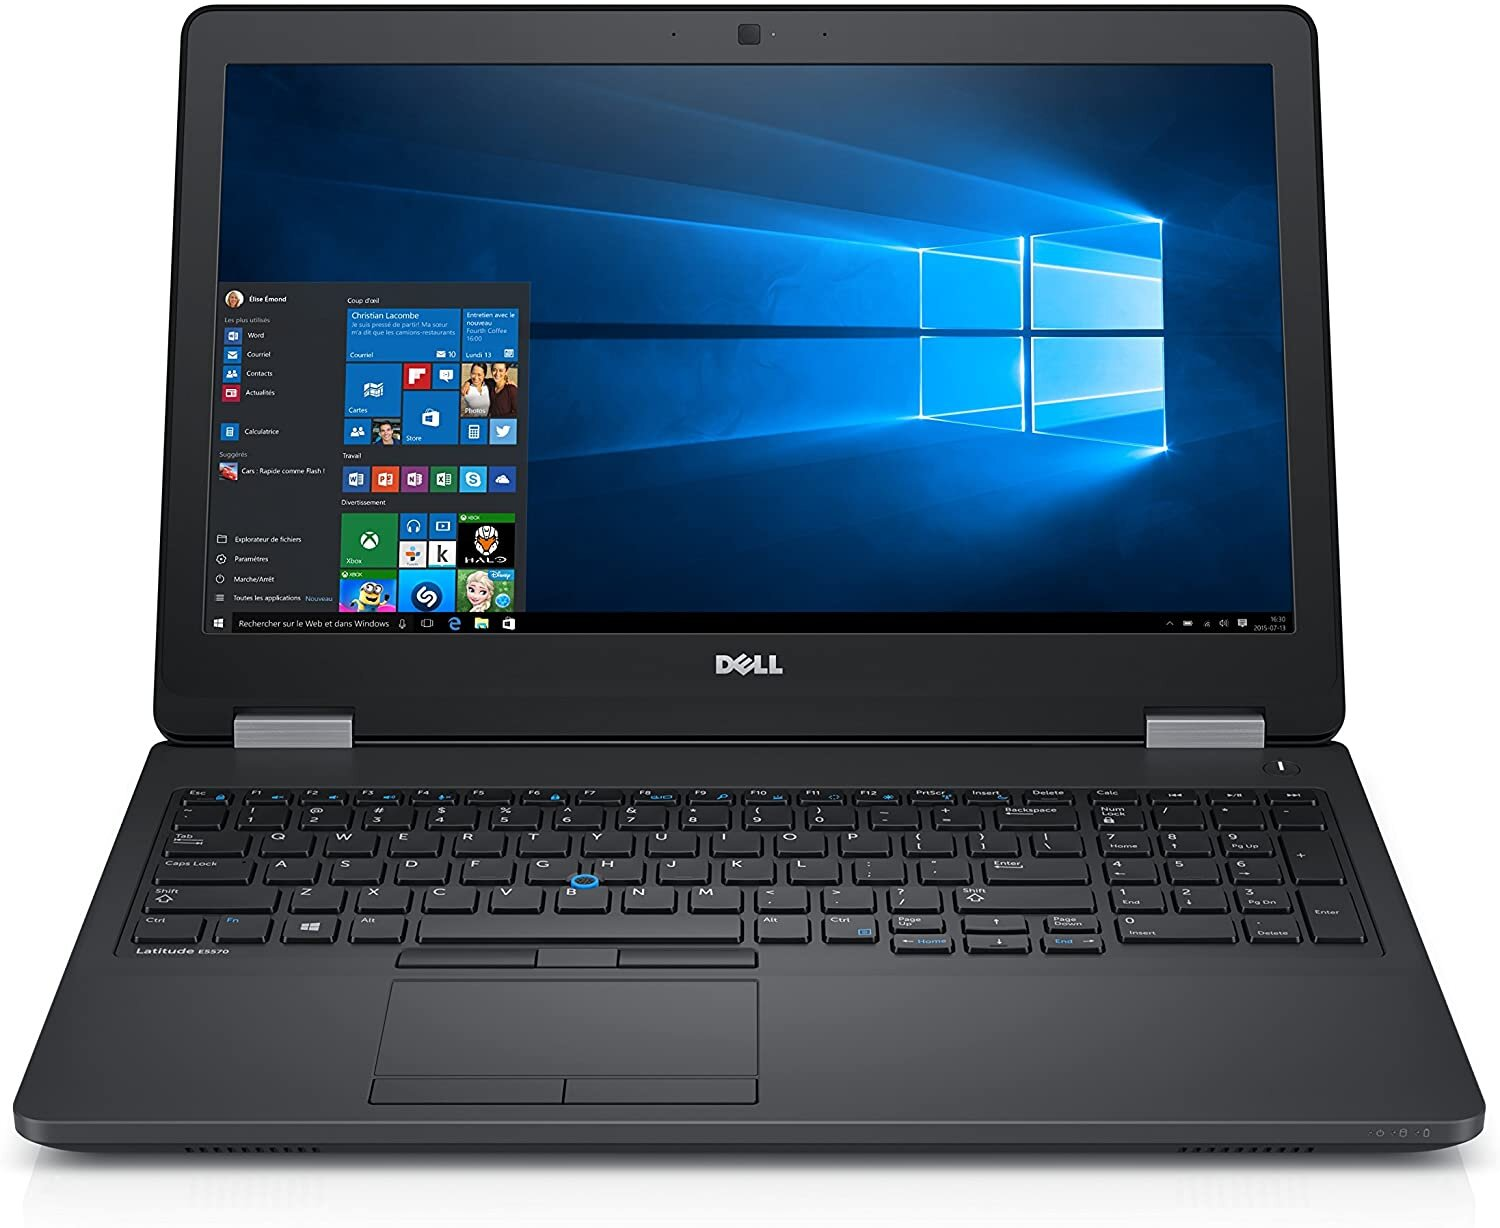 DELL Latitude E5570 I5-6440HQ 8GB 512GB Win10 PRO